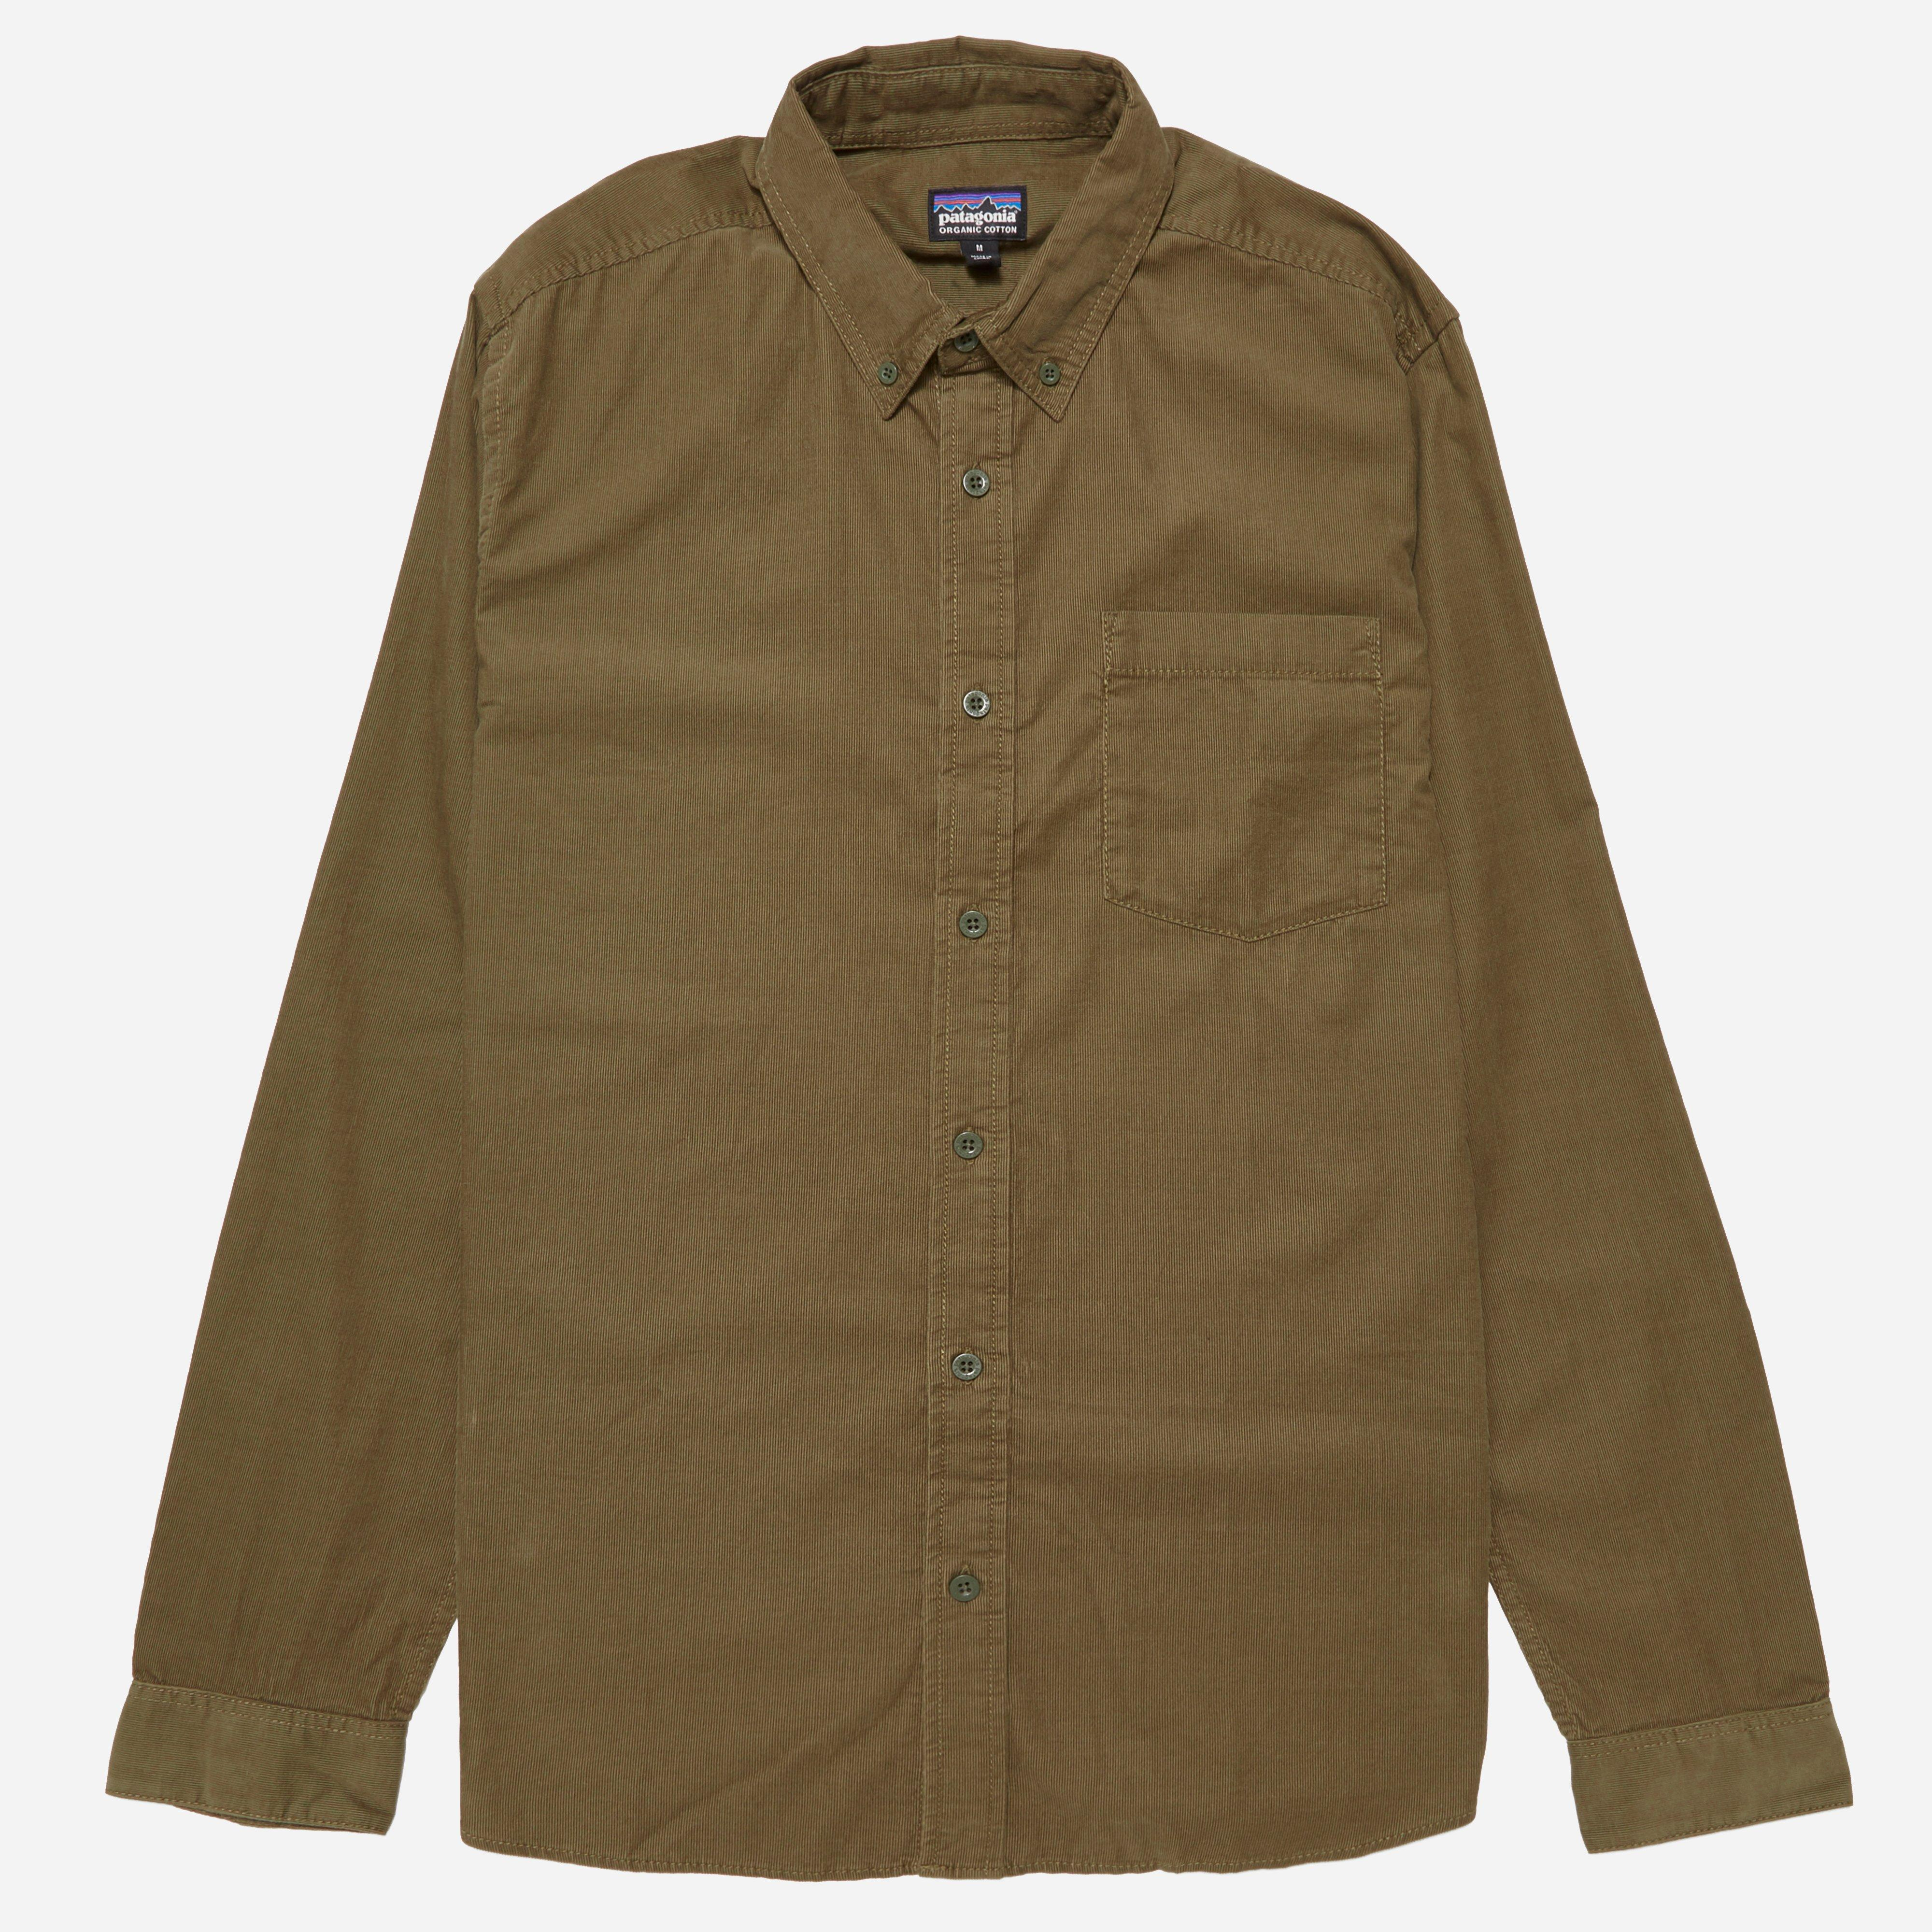 Patagonia Bluffside Cord Shirt